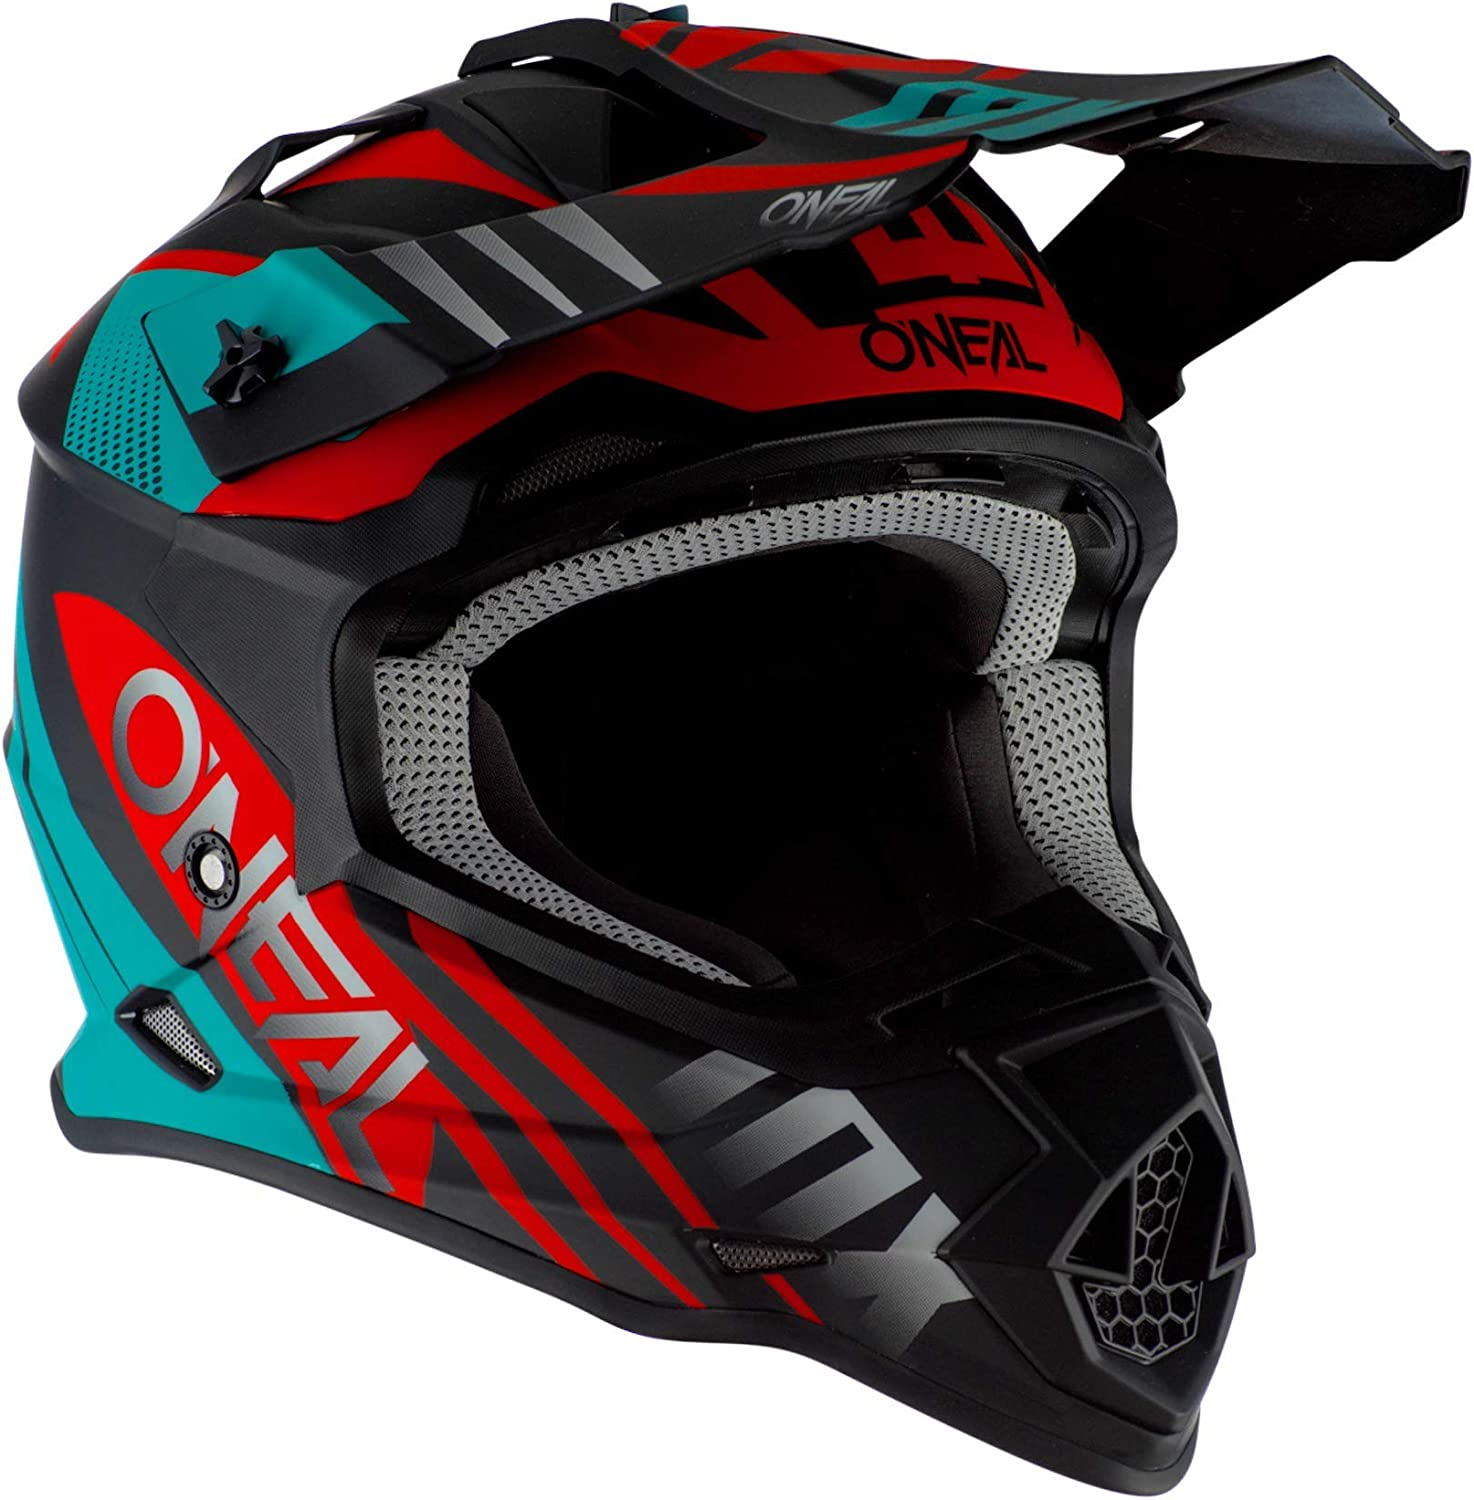 ONeal 2Series Spyde 2.0 Moto Cross Helm Downhill All Mountain Bike Gel/ände Enduro Quad Offroad Gr/ö/ße L Farbe T/ürkis Rot 0200-4